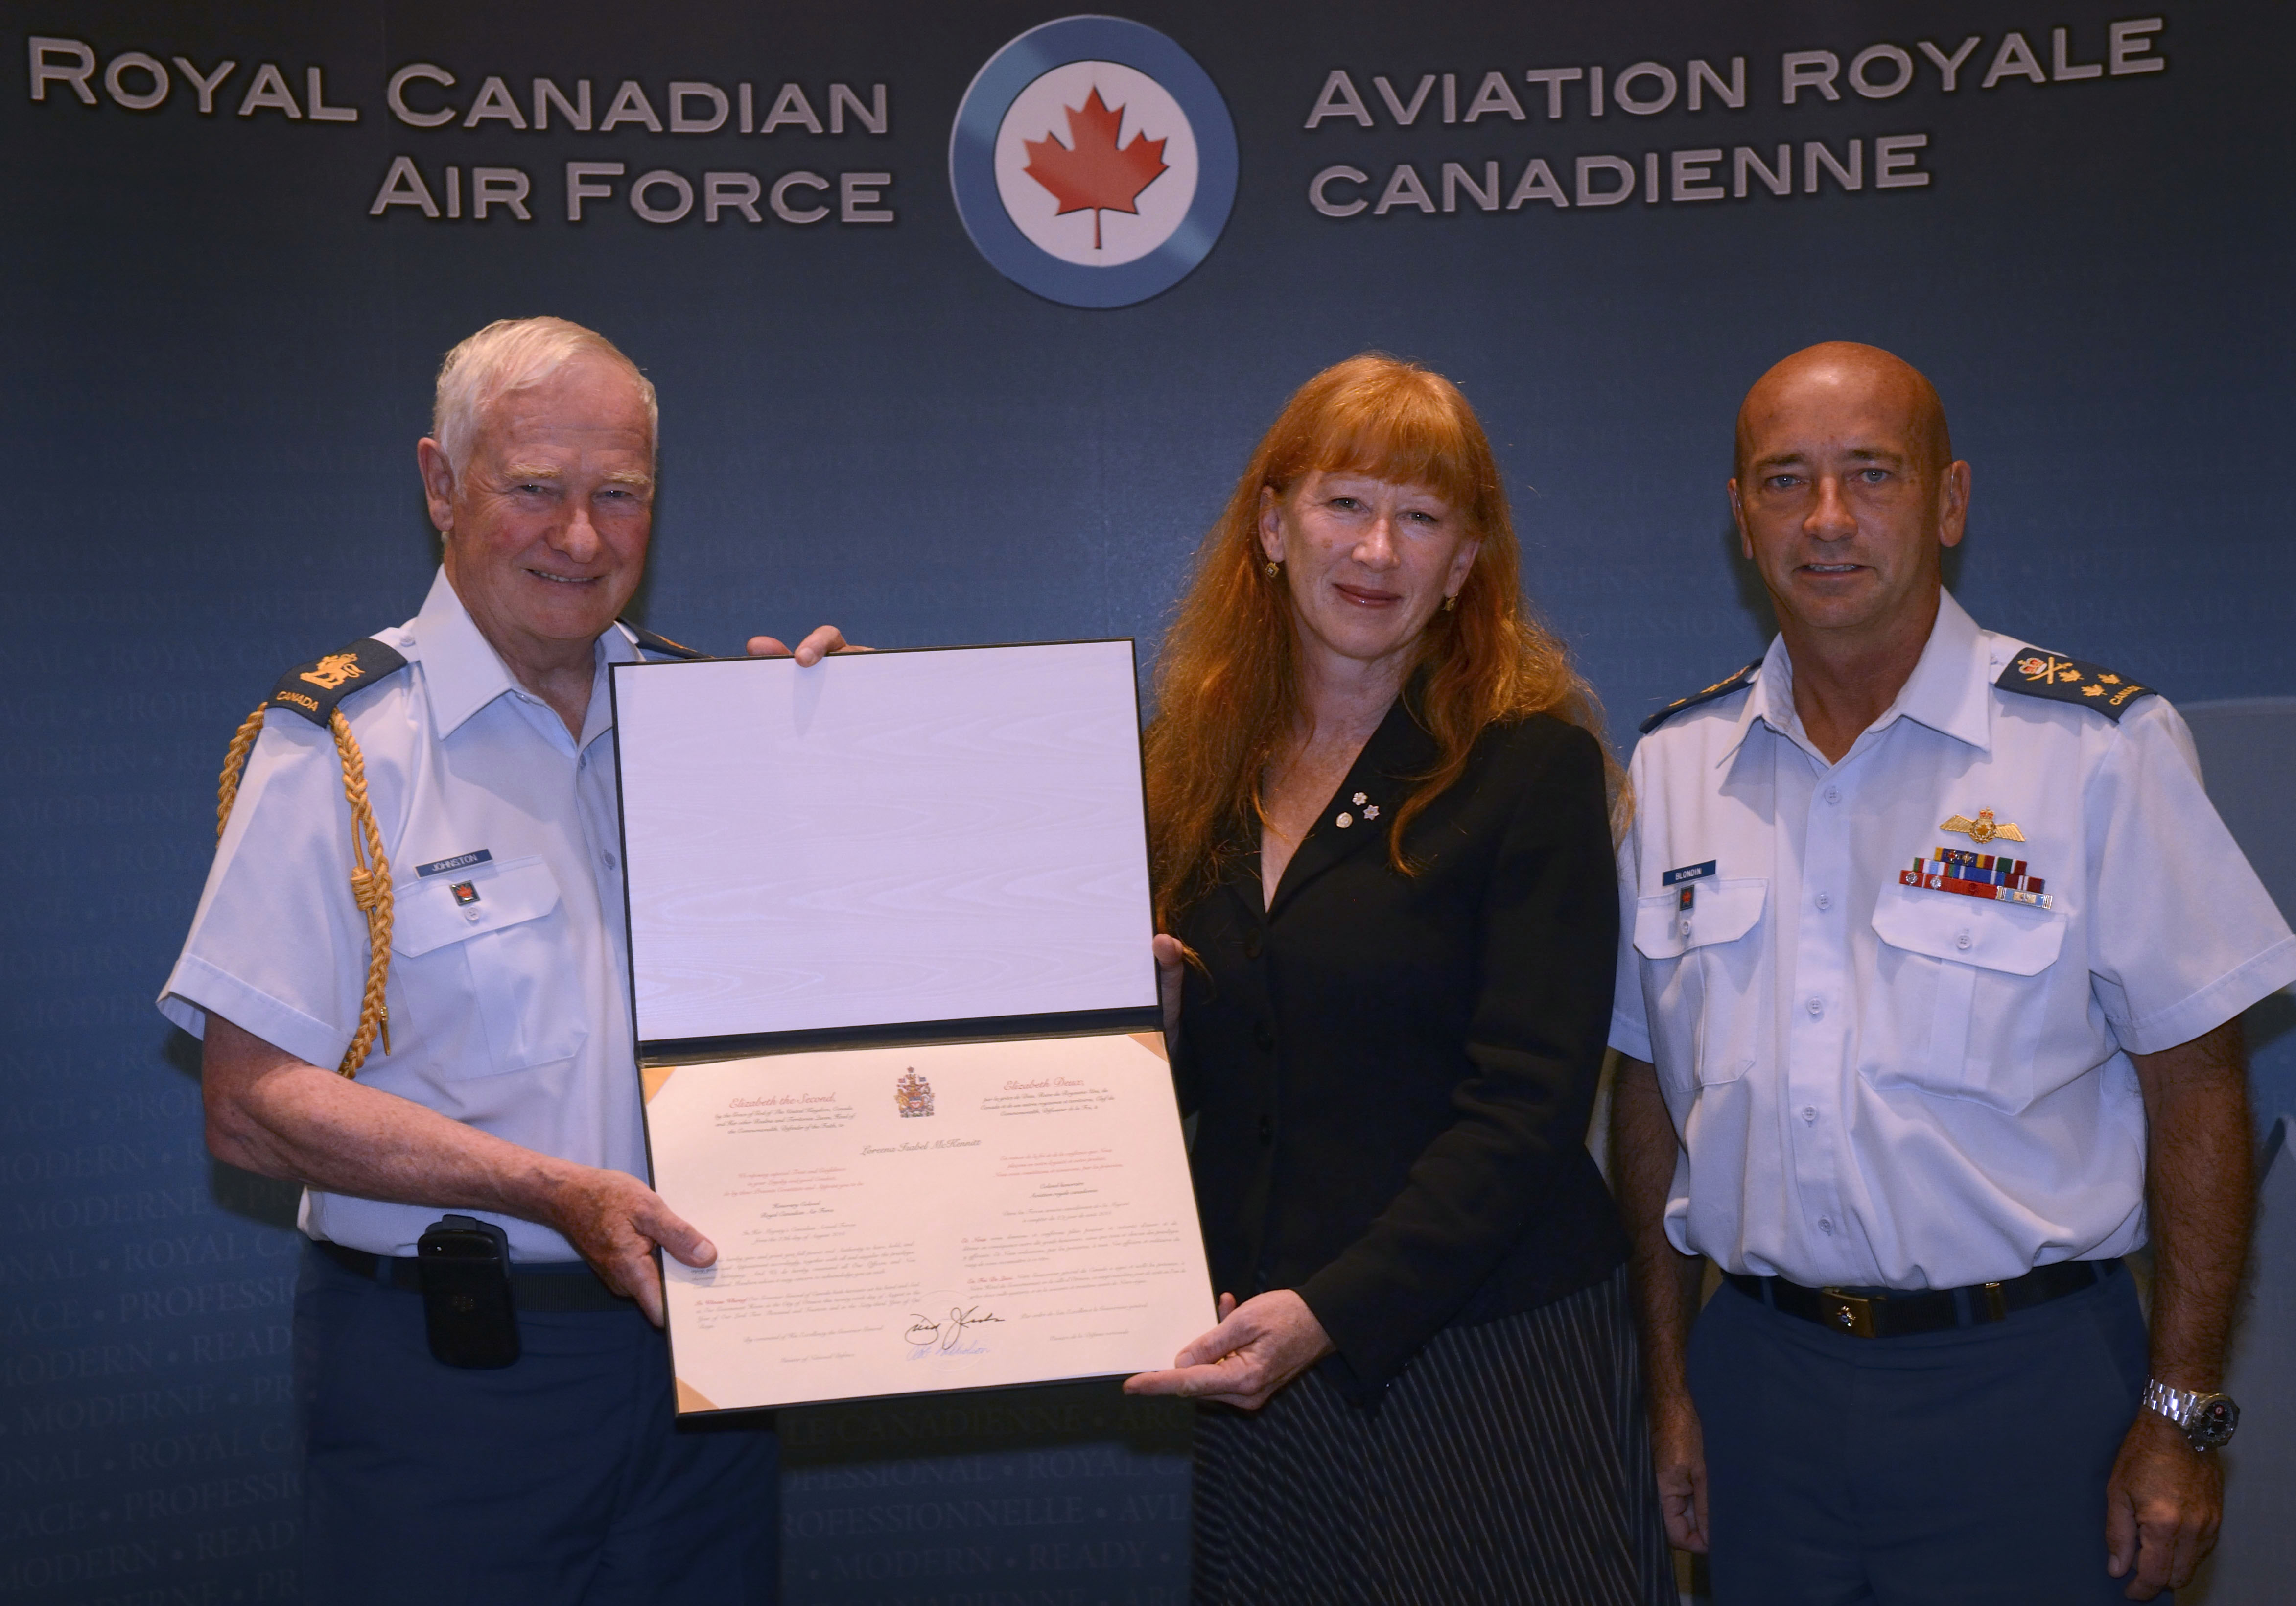 His Excellency the Right Honourable David Johnston, Governor General and Commander-in-Chief of Canada (left), presents Ms Loreena McKennitt with a scroll marking her appointment as the new honorary colonel of the Royal Canadian Air Force alongside Lieutenant-General Yvan Blondin, the commander of th